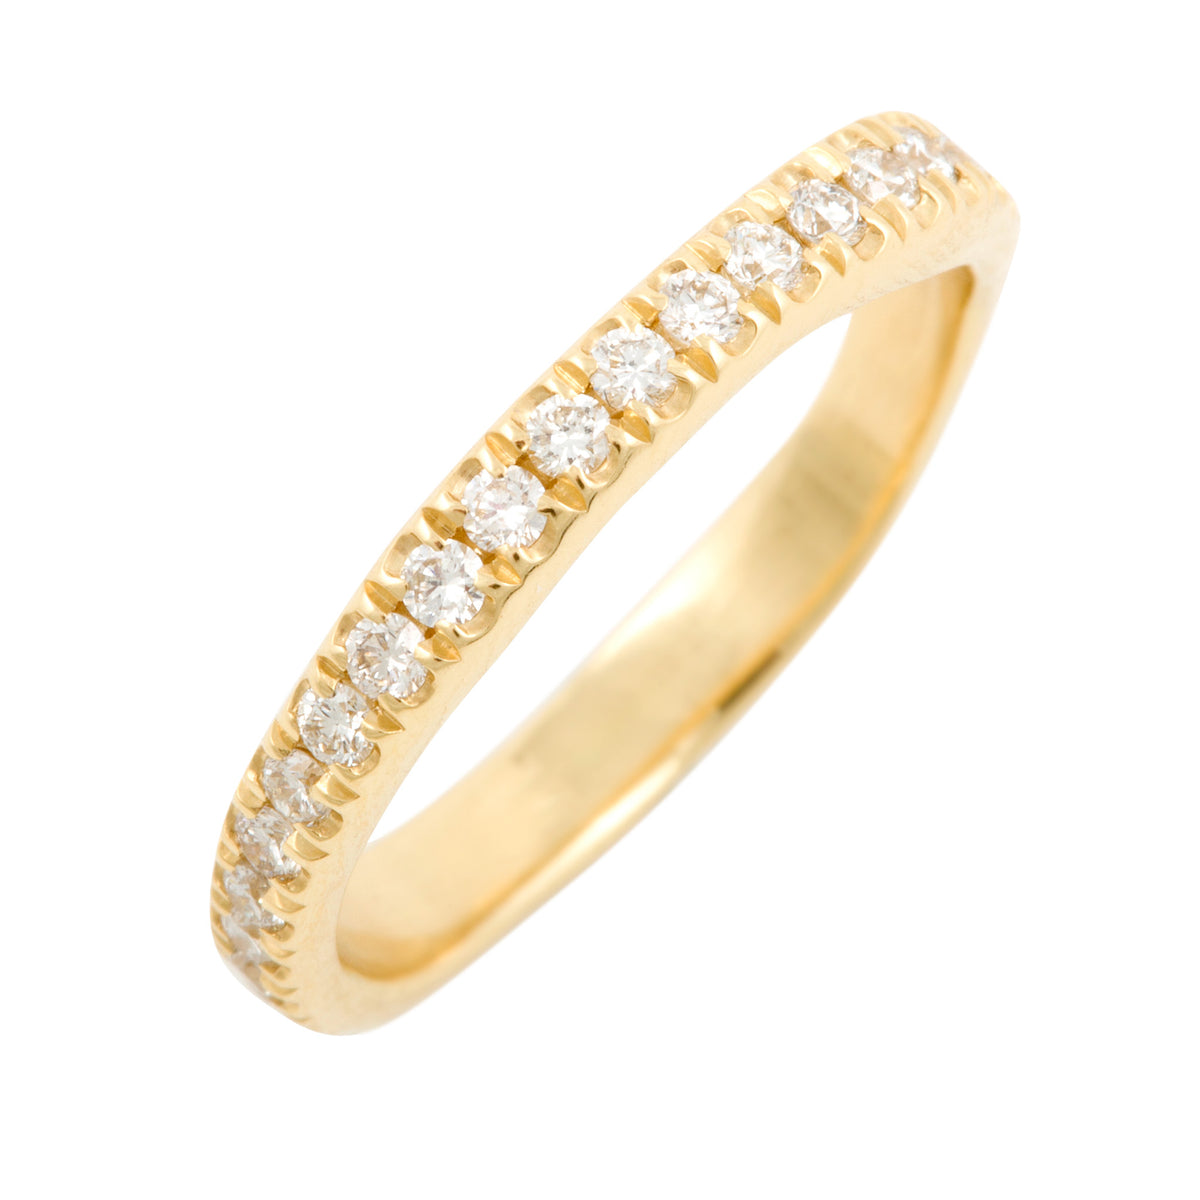 Forever Ring in 18ct Yellow or 18ct White Gold